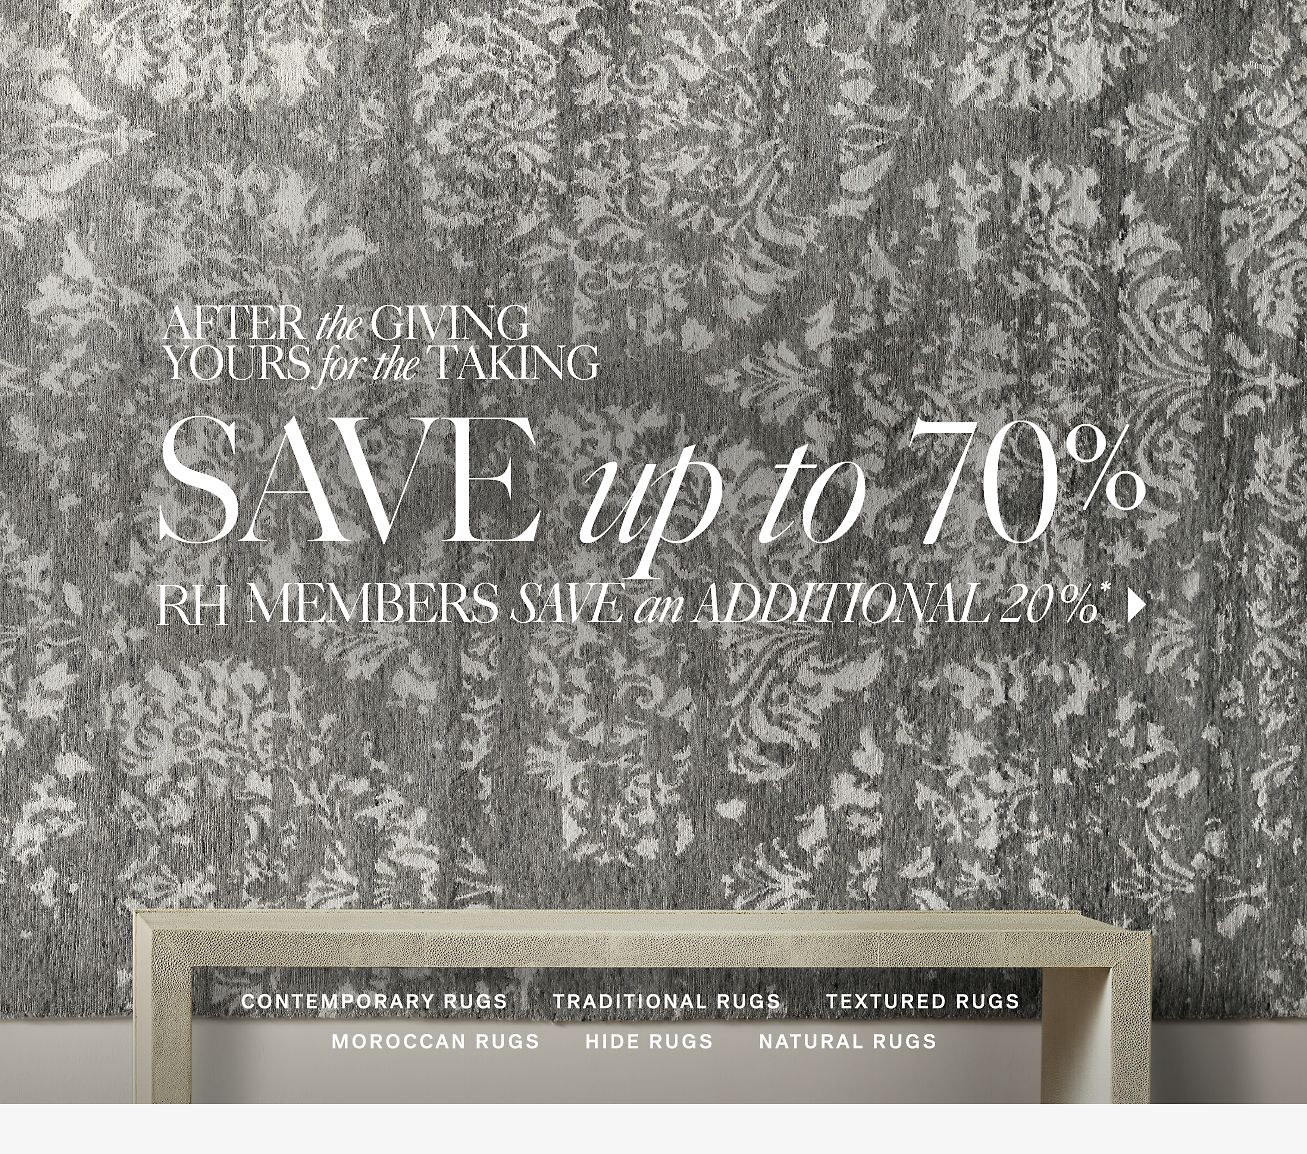 Significant Savings on All Rugs